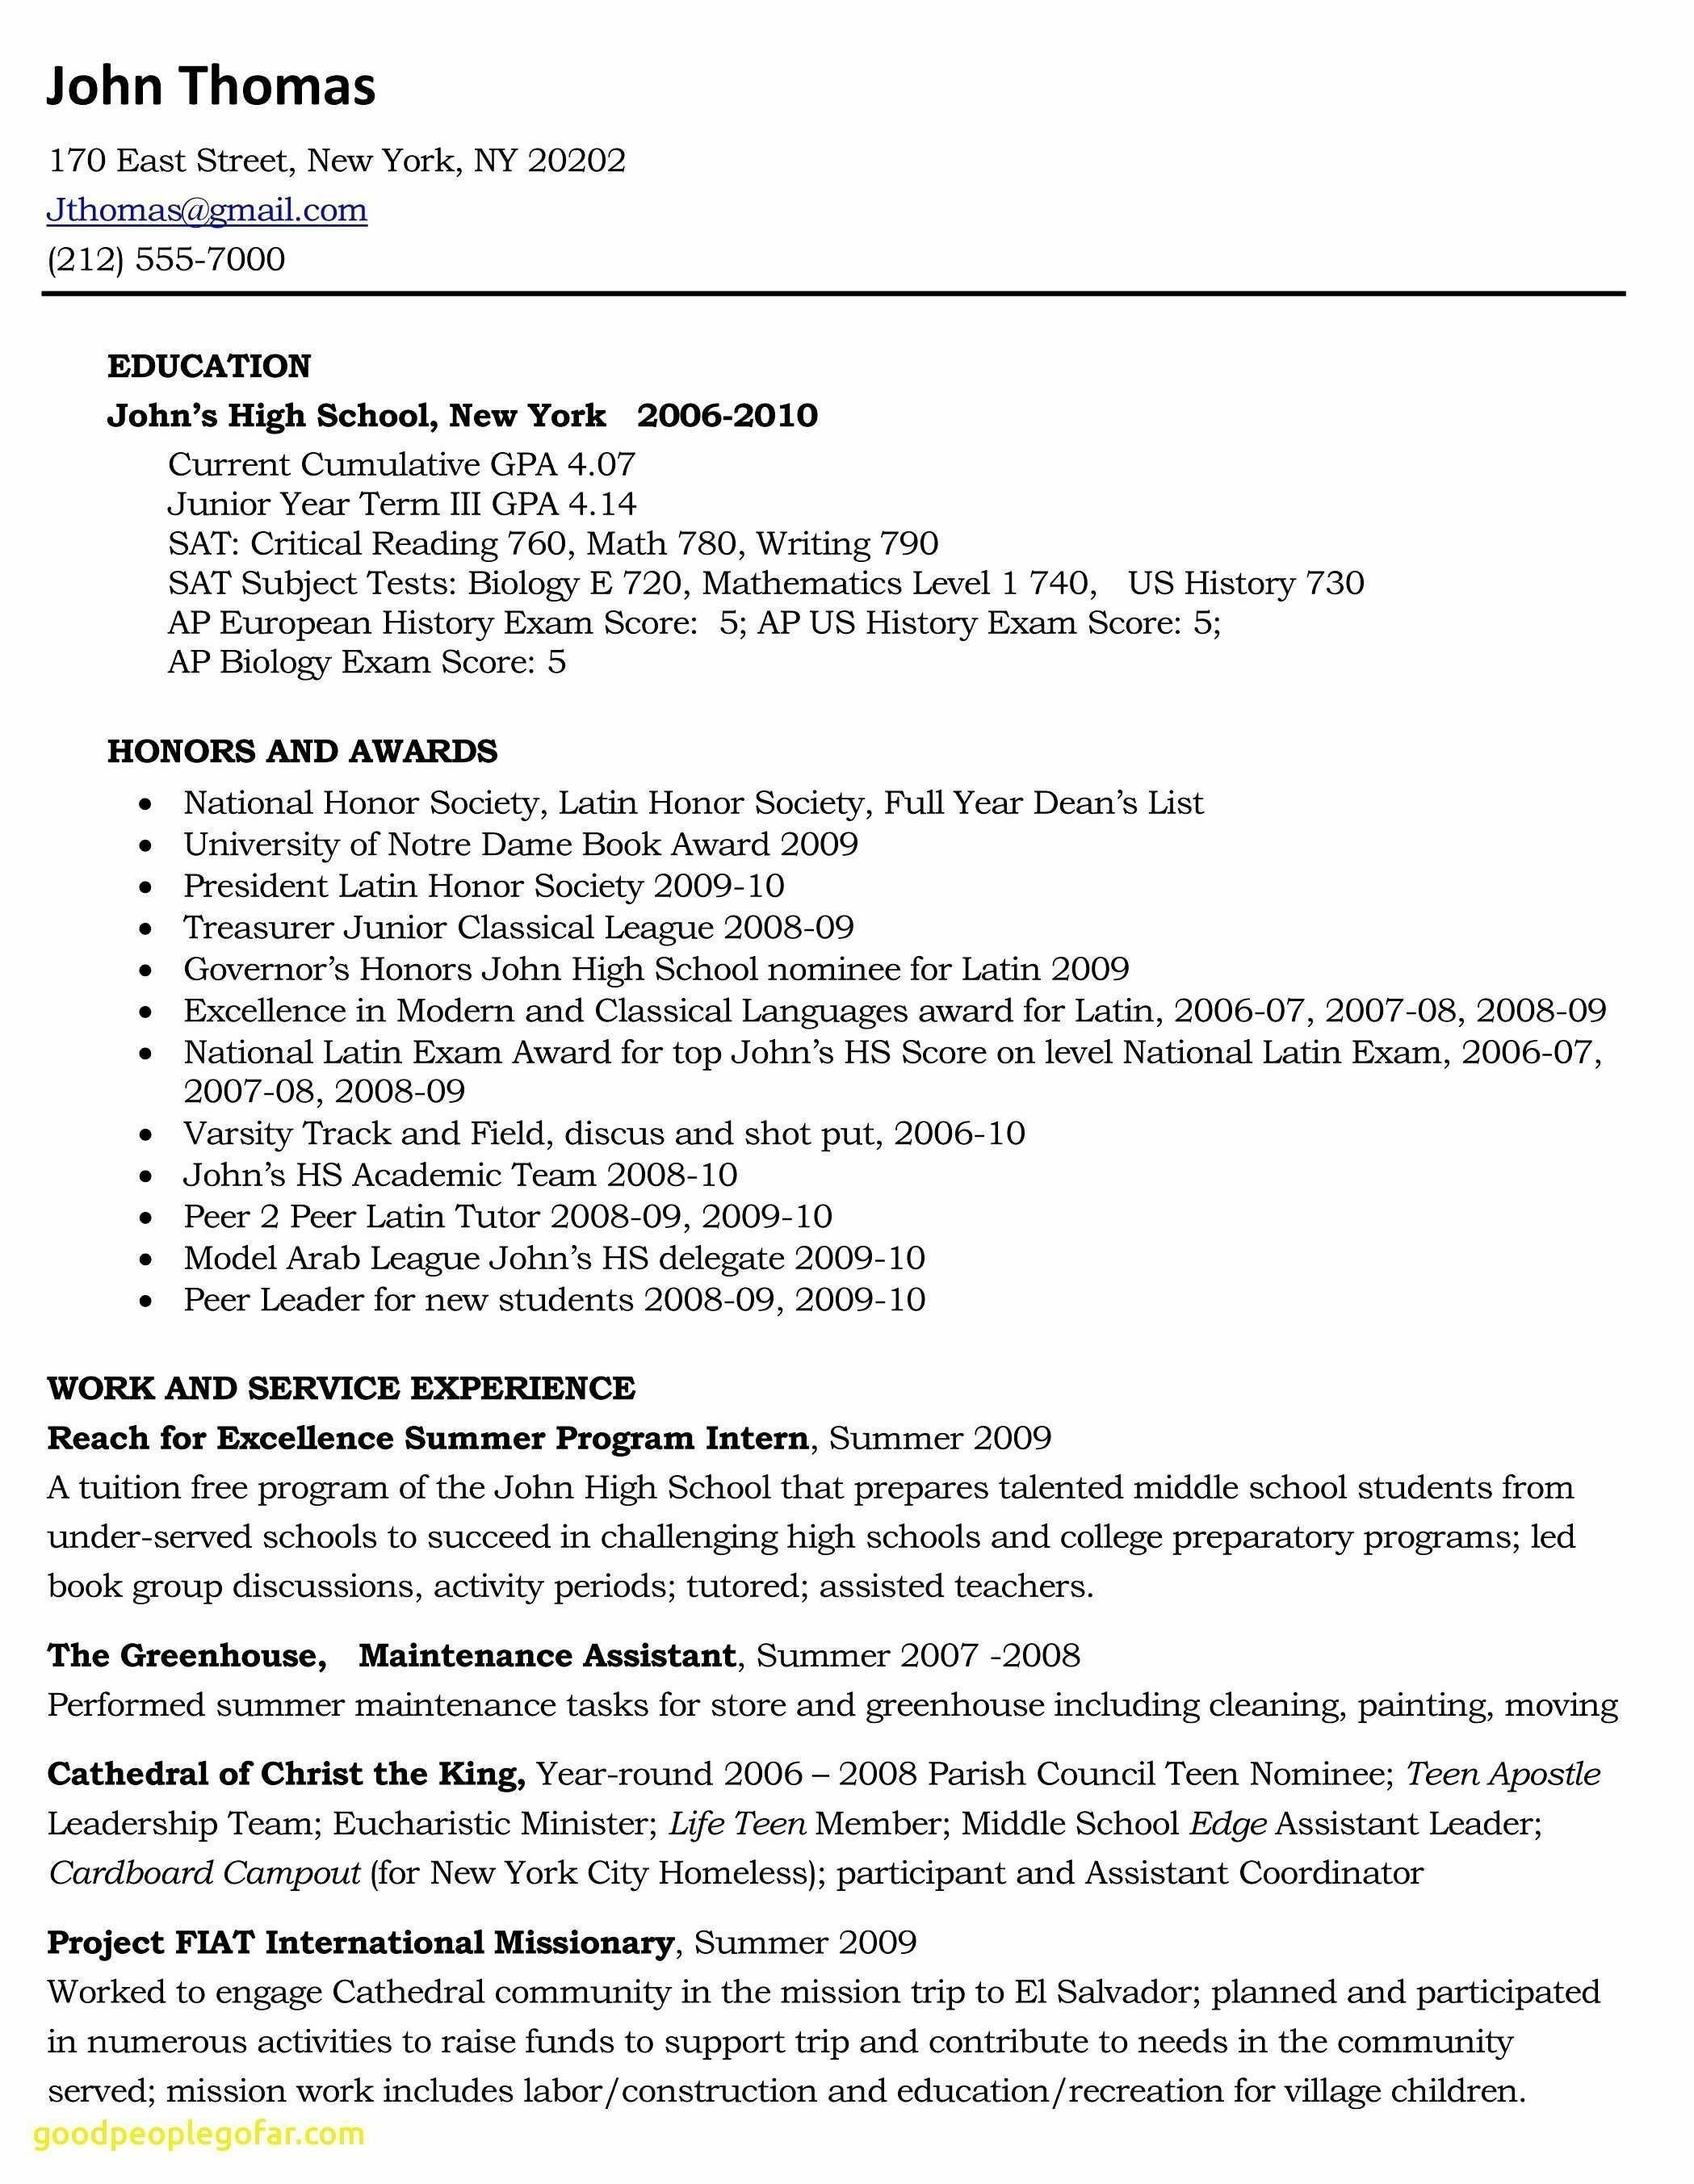 Free Resume Writing Services - Biology Cover Letter New Do A Resume Fresh How to Do A Resume Free